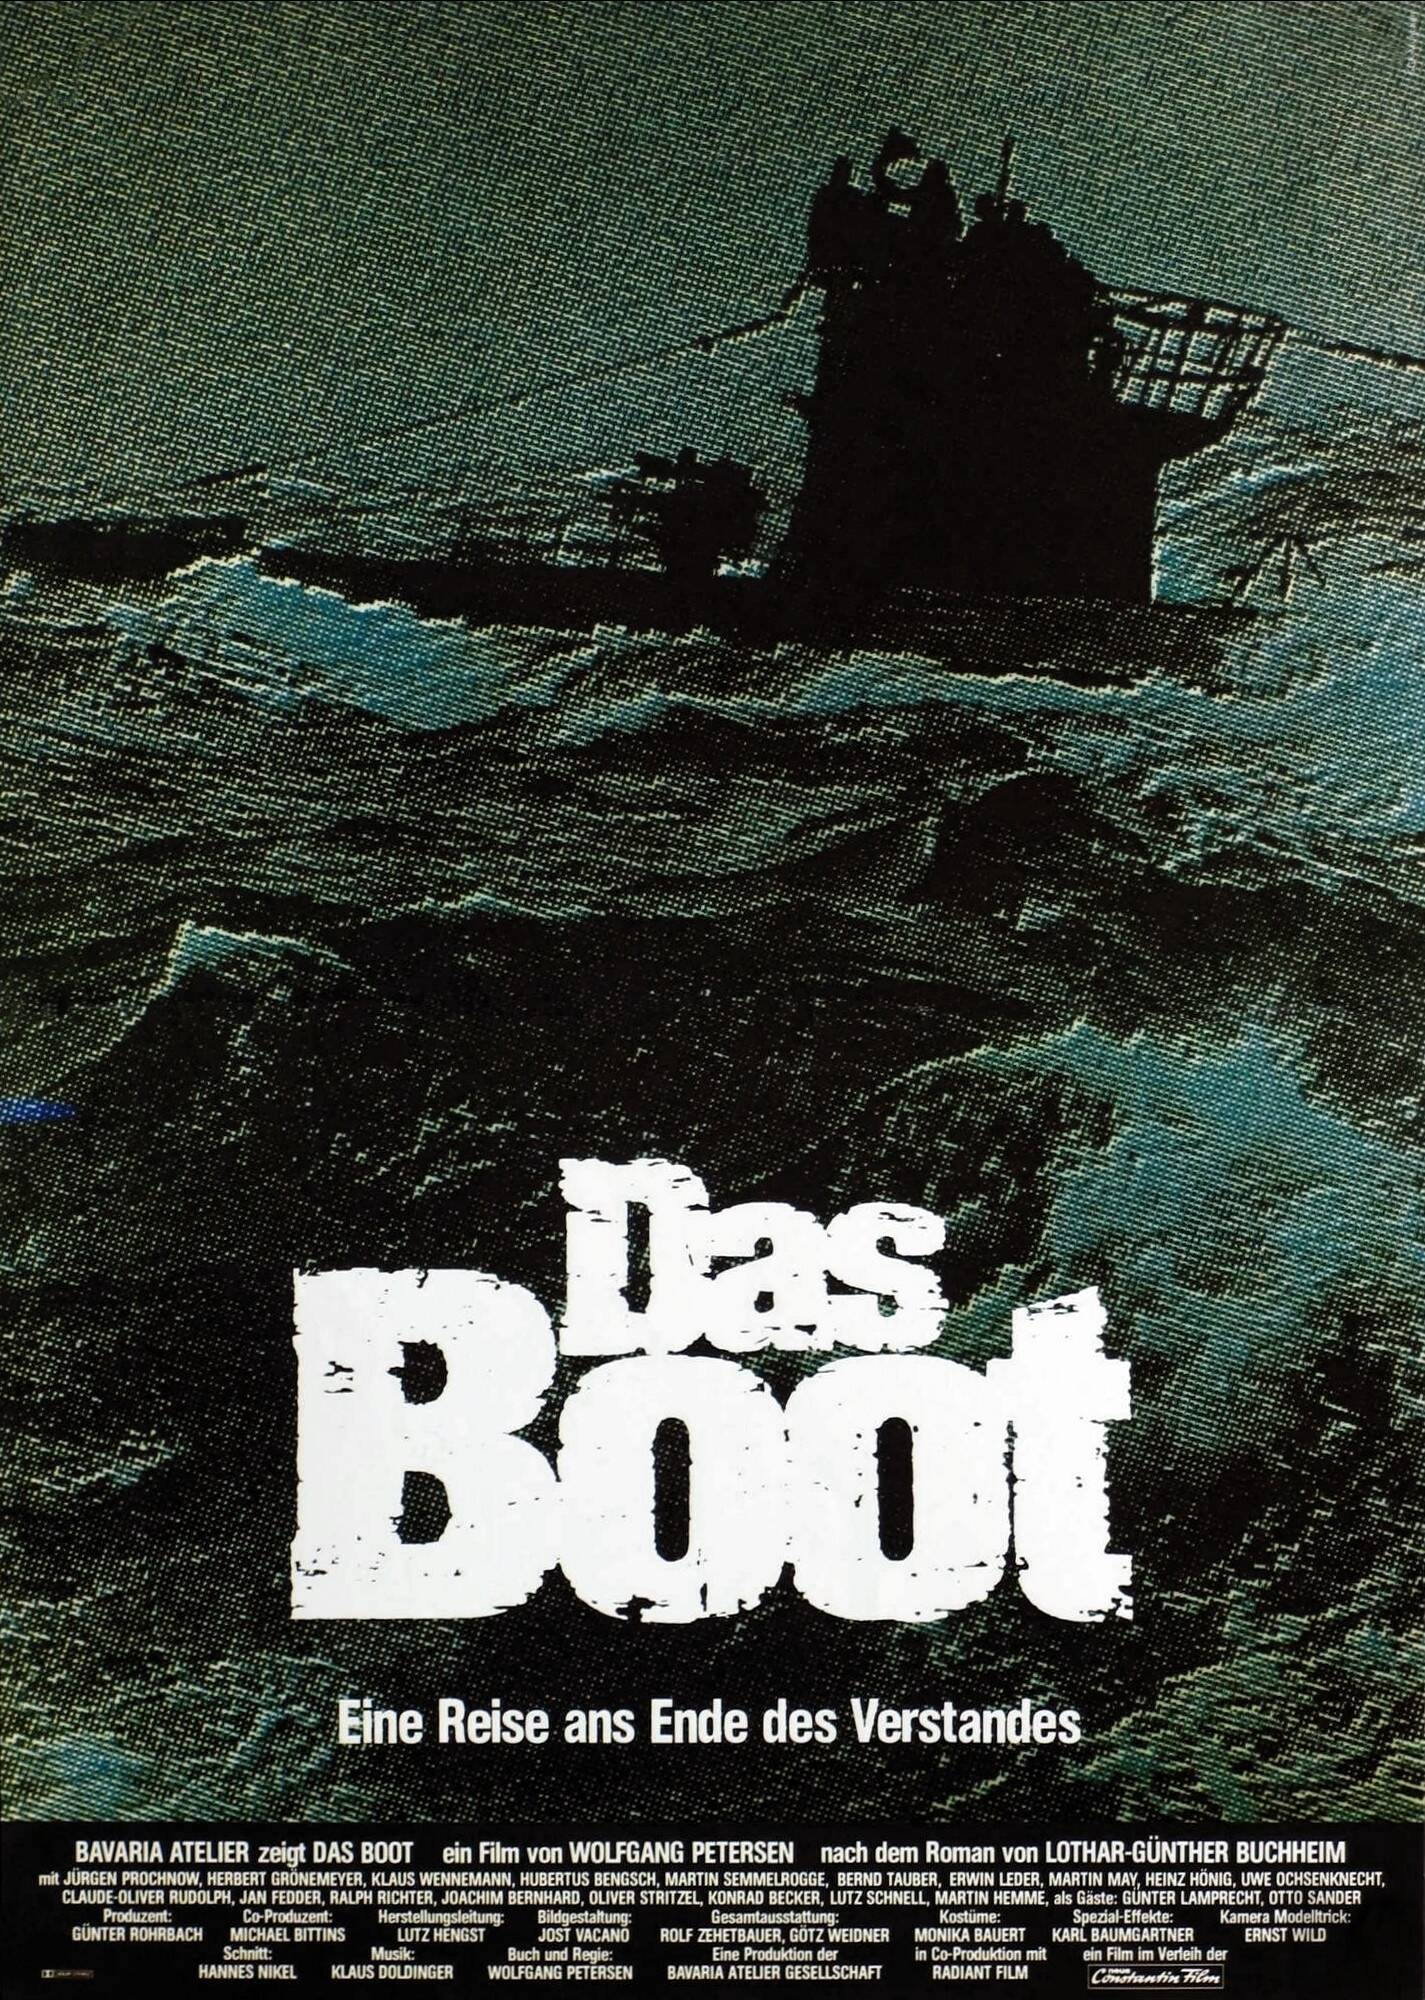 Das Boot Film (1981) · Trailer · Kritik · KINO.de